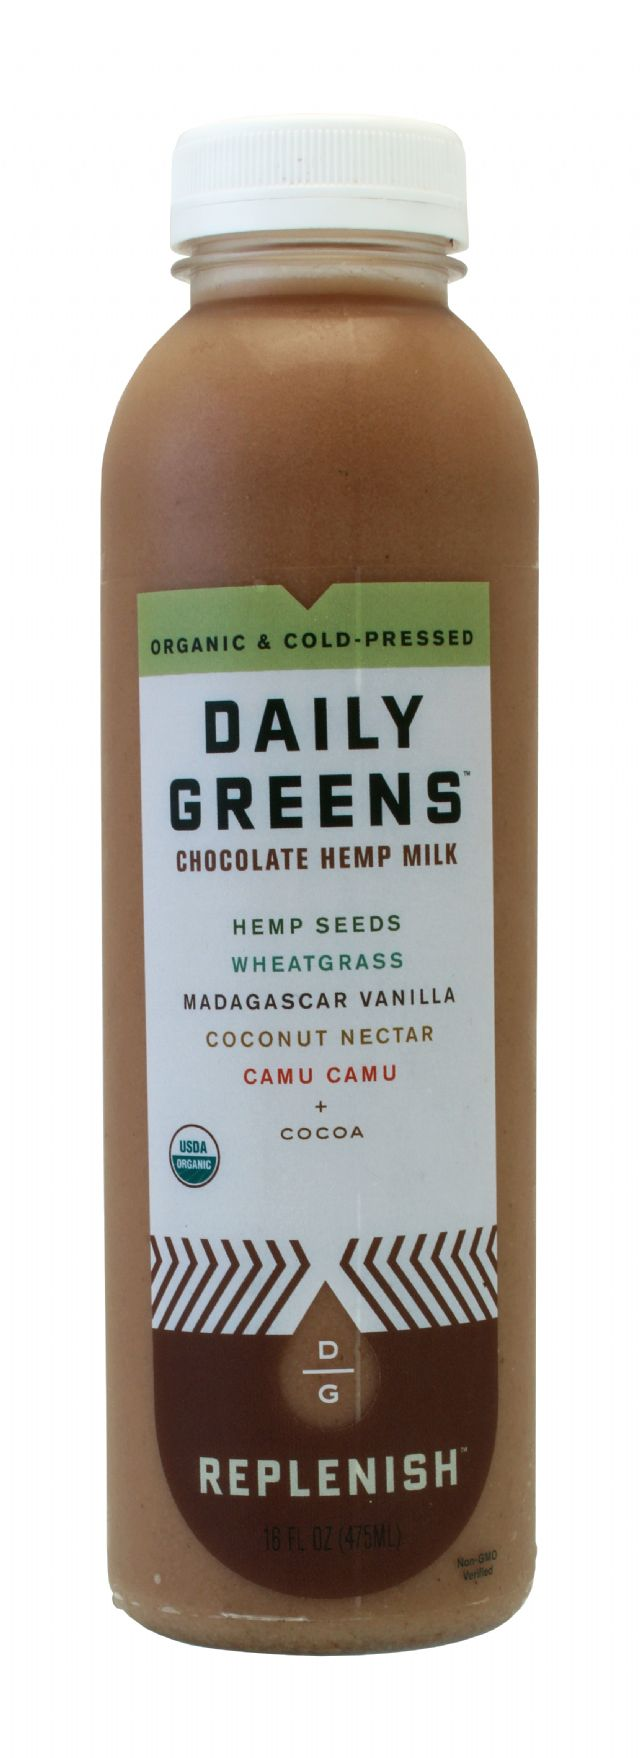 Daily Greens: DailyGreens ChocoHemp Front